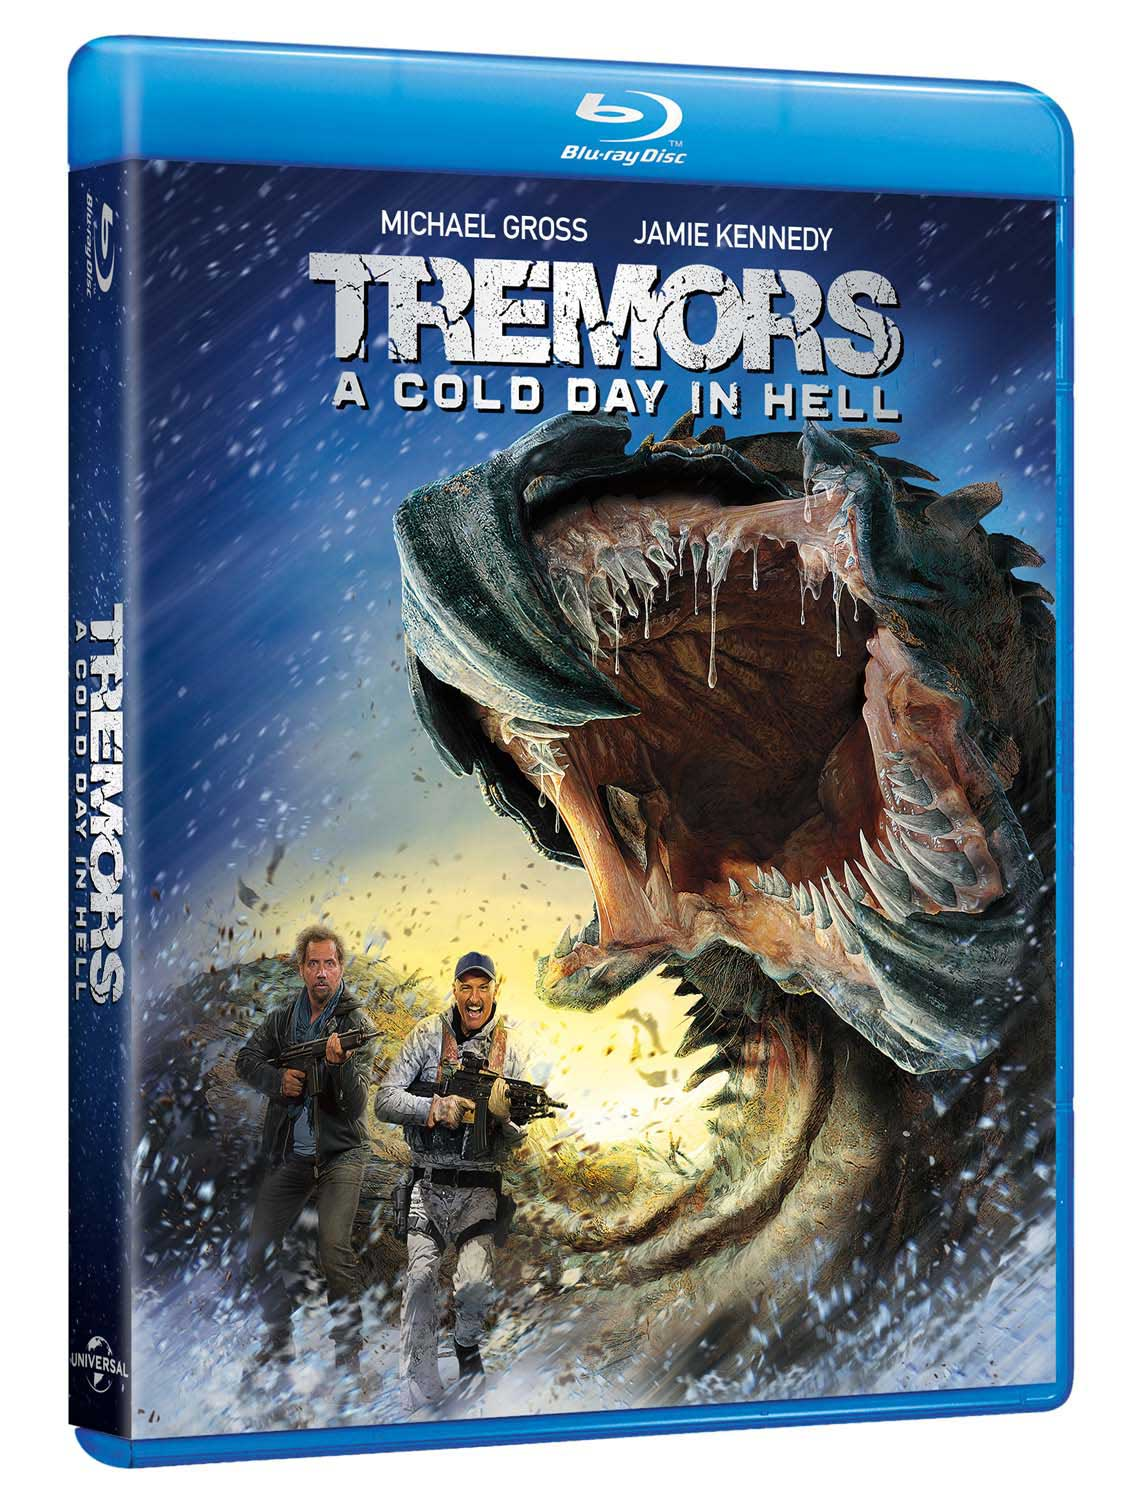 TREMORS A COLD DAY IN HELL - BLU RAY